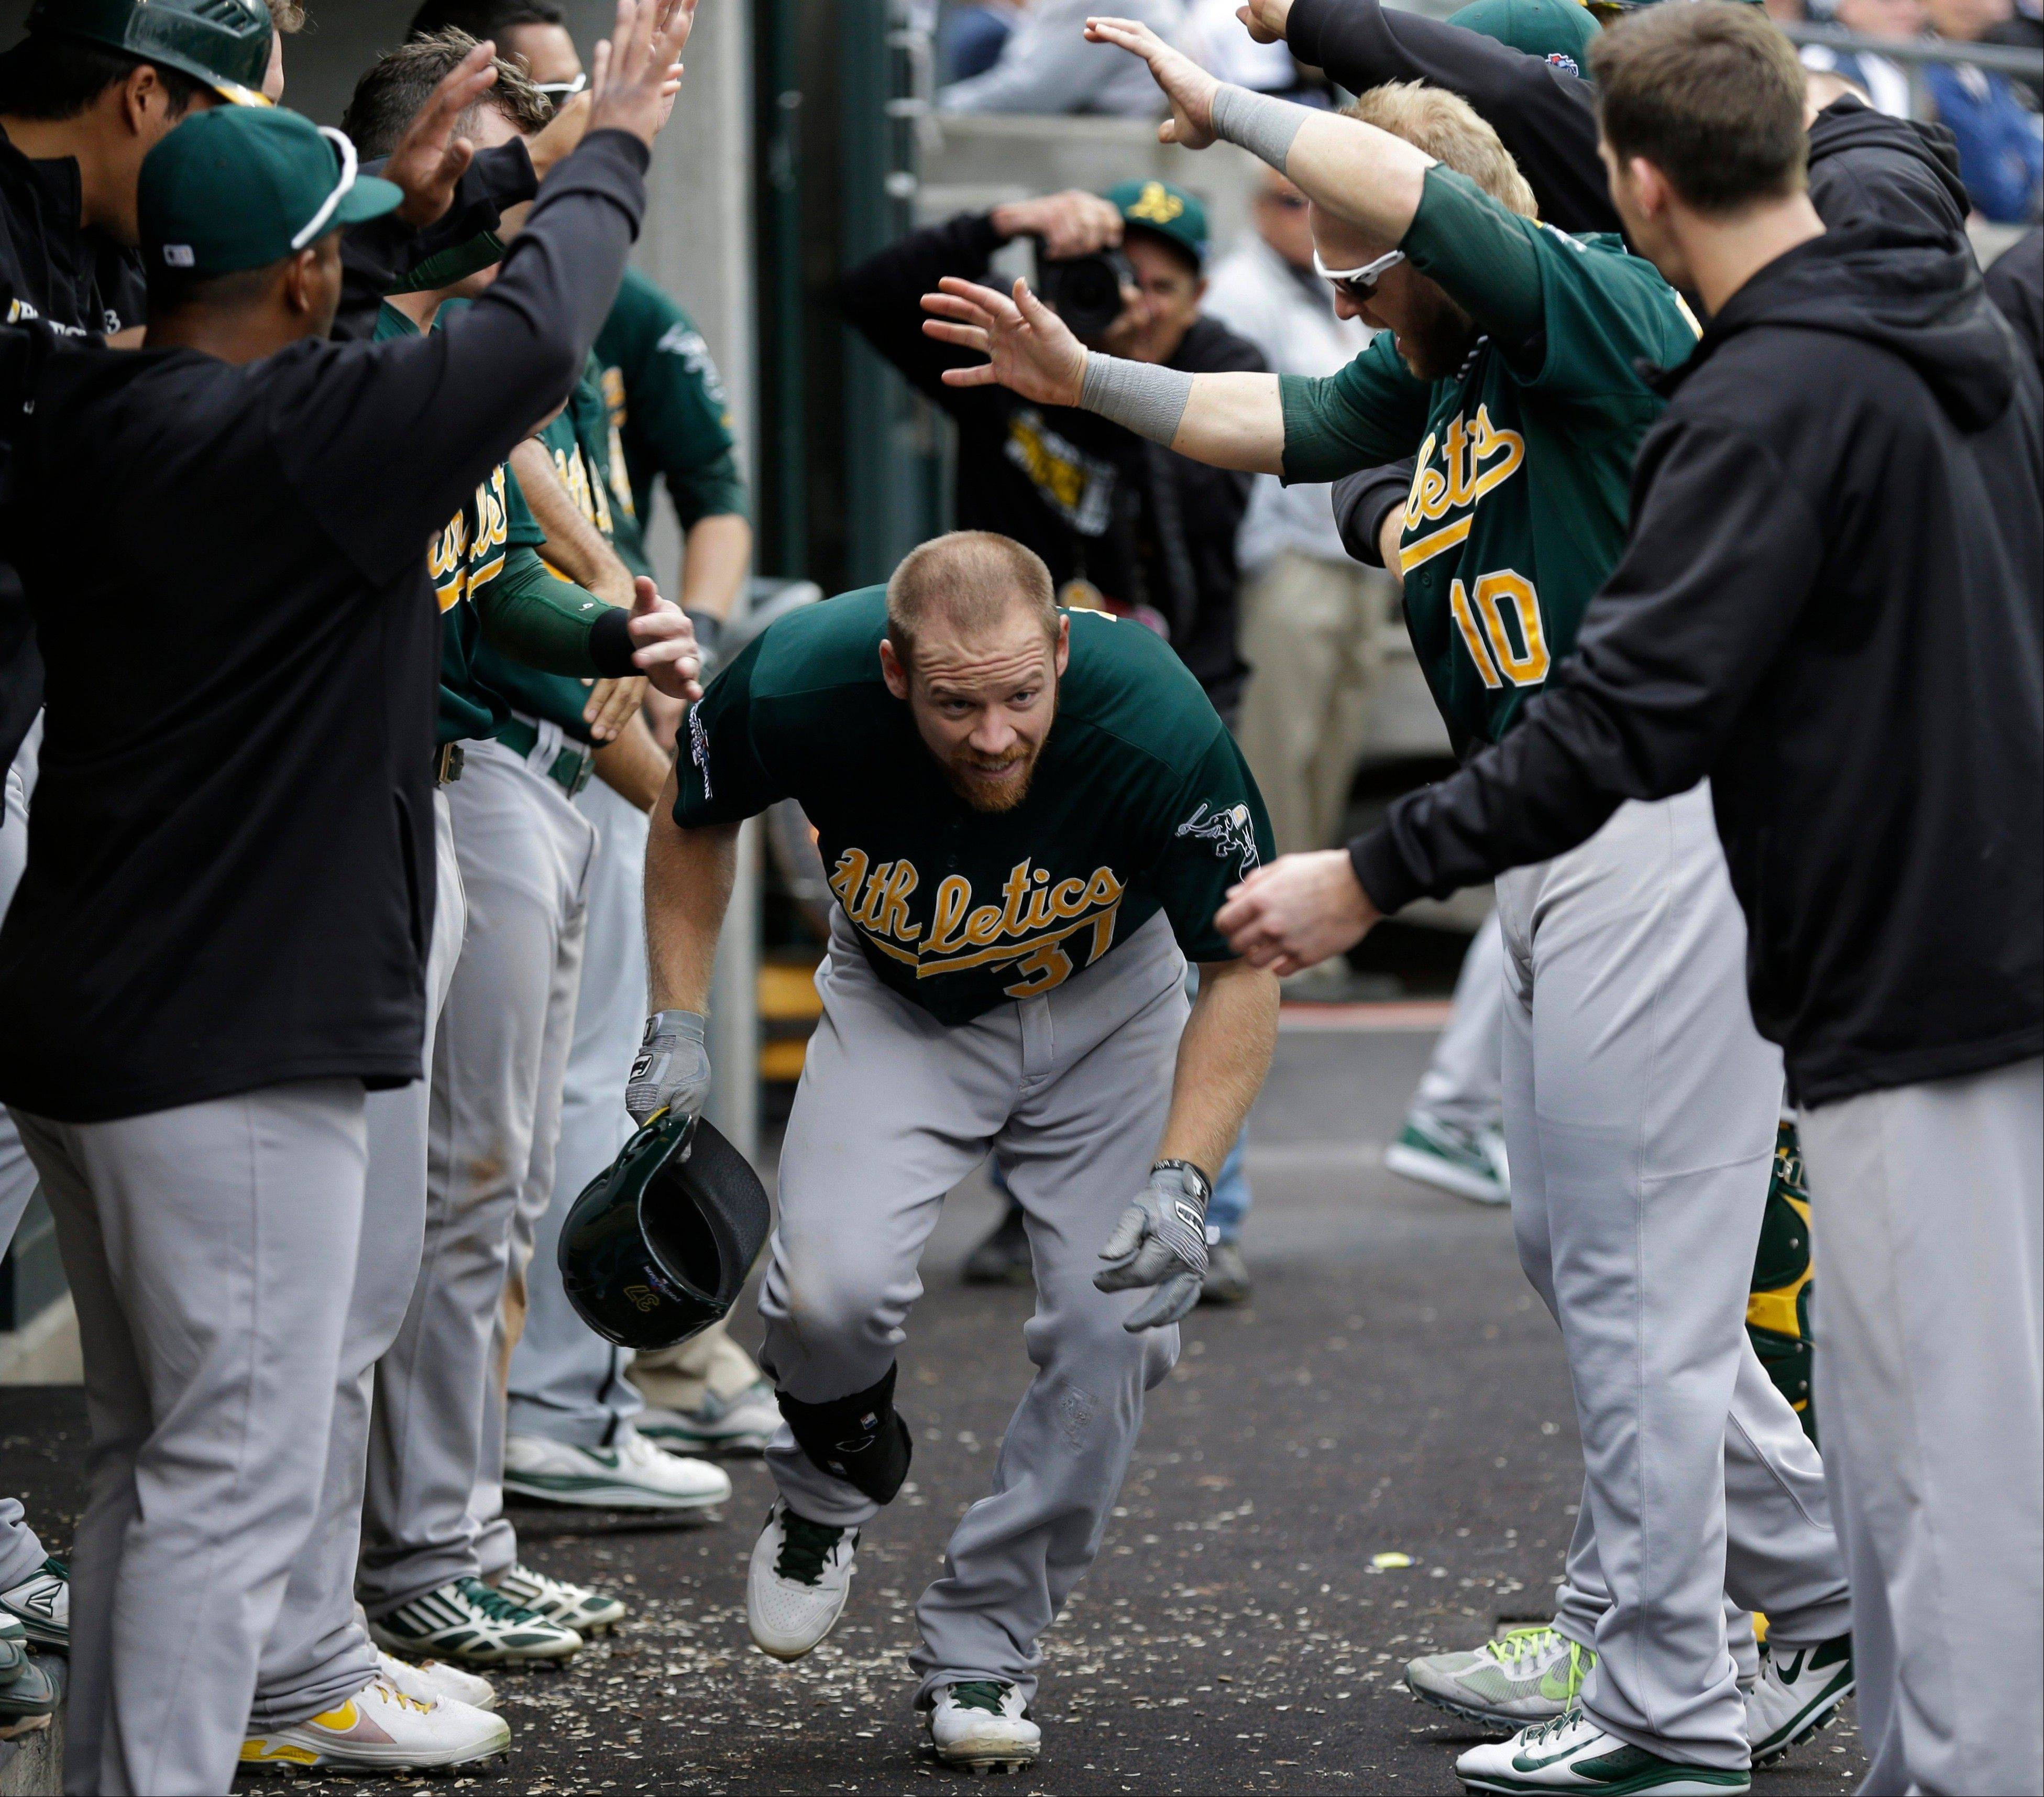 Oakland Athletics' Brandon Moss is cheered by teammates after his solo home run during the fifth inning of Game 3 Monday against the Detroit Tigers.